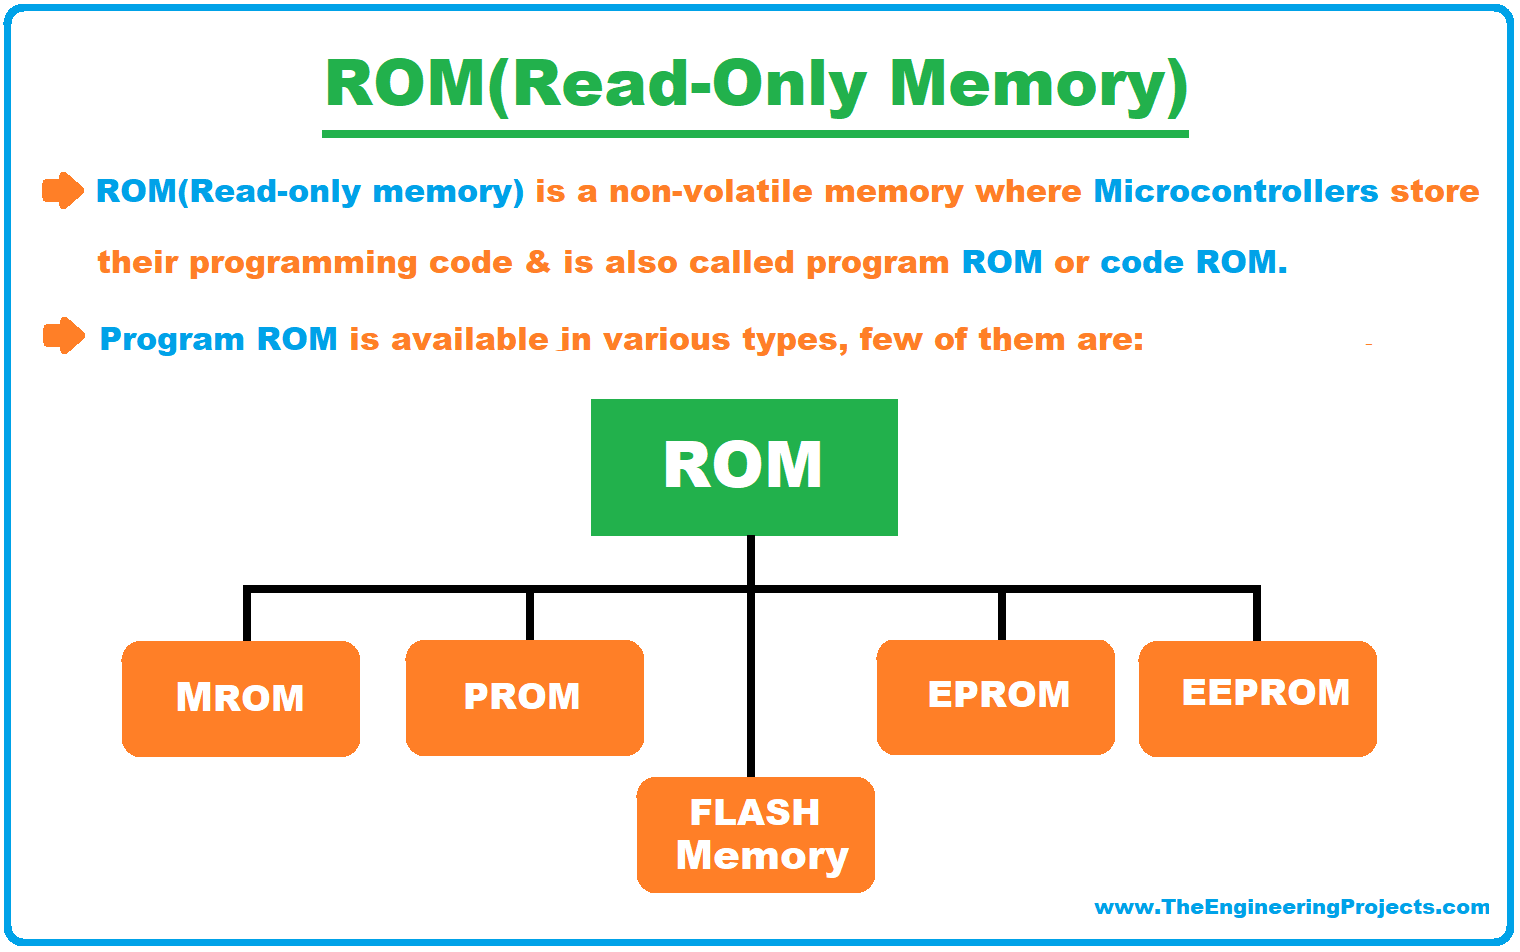 What is a Microcontroller, Microcontrollers Compilers, Microcontrollers Architecture, Types of Microcontrollers, Microcontroller Vs Microprocessor, Microcontroller Characteristics, Microcontrollers Applications, ROM memory